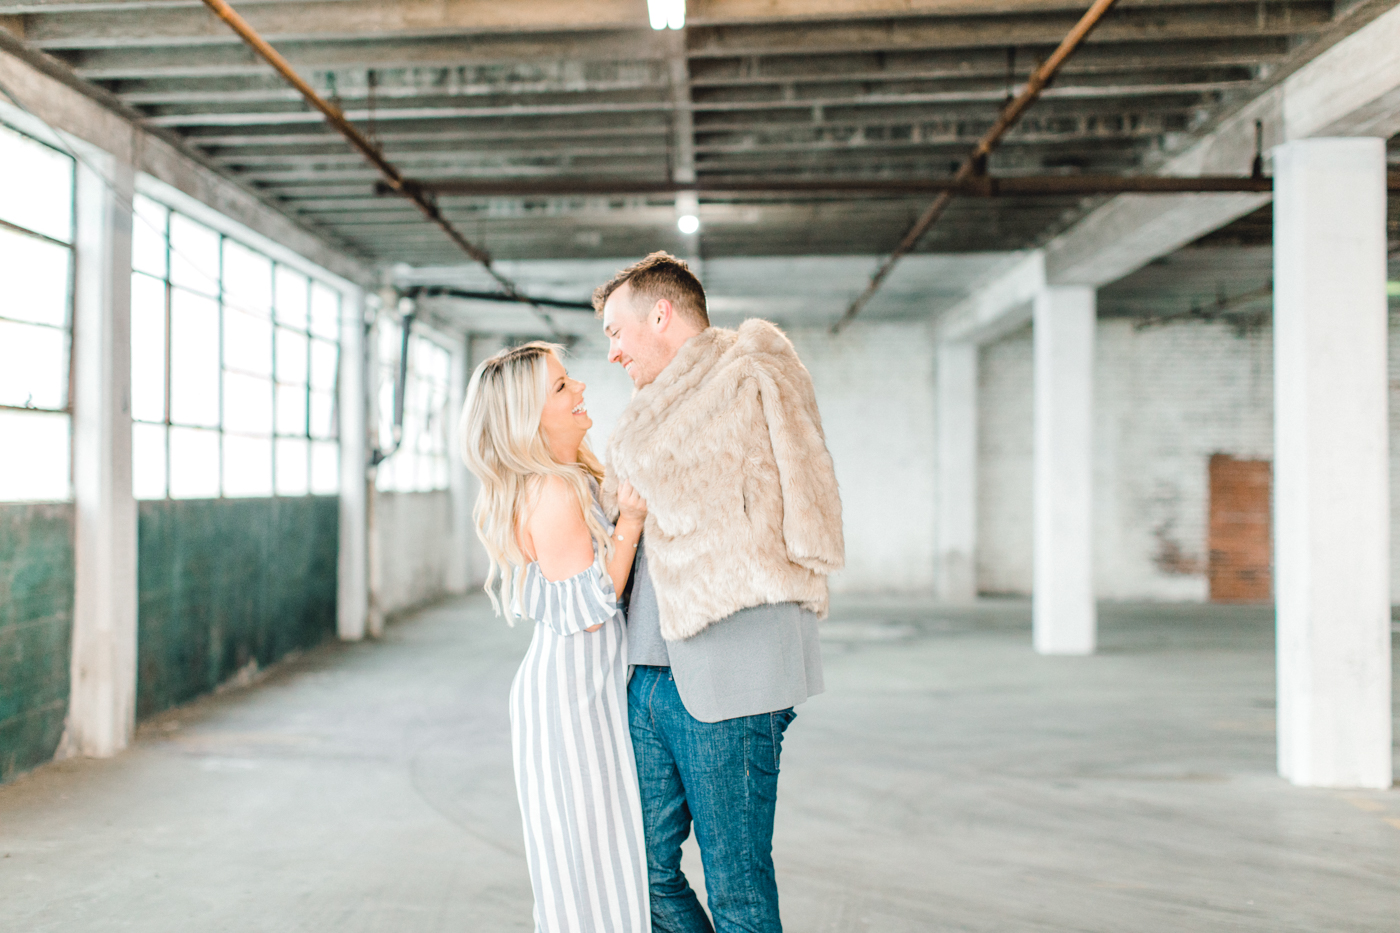 four corners photography best atlanta wedding photographer downtown atlanta engagement session engagement proposal ventanas downtown atlanta wedding atlanta wedding photographer-31.jpg